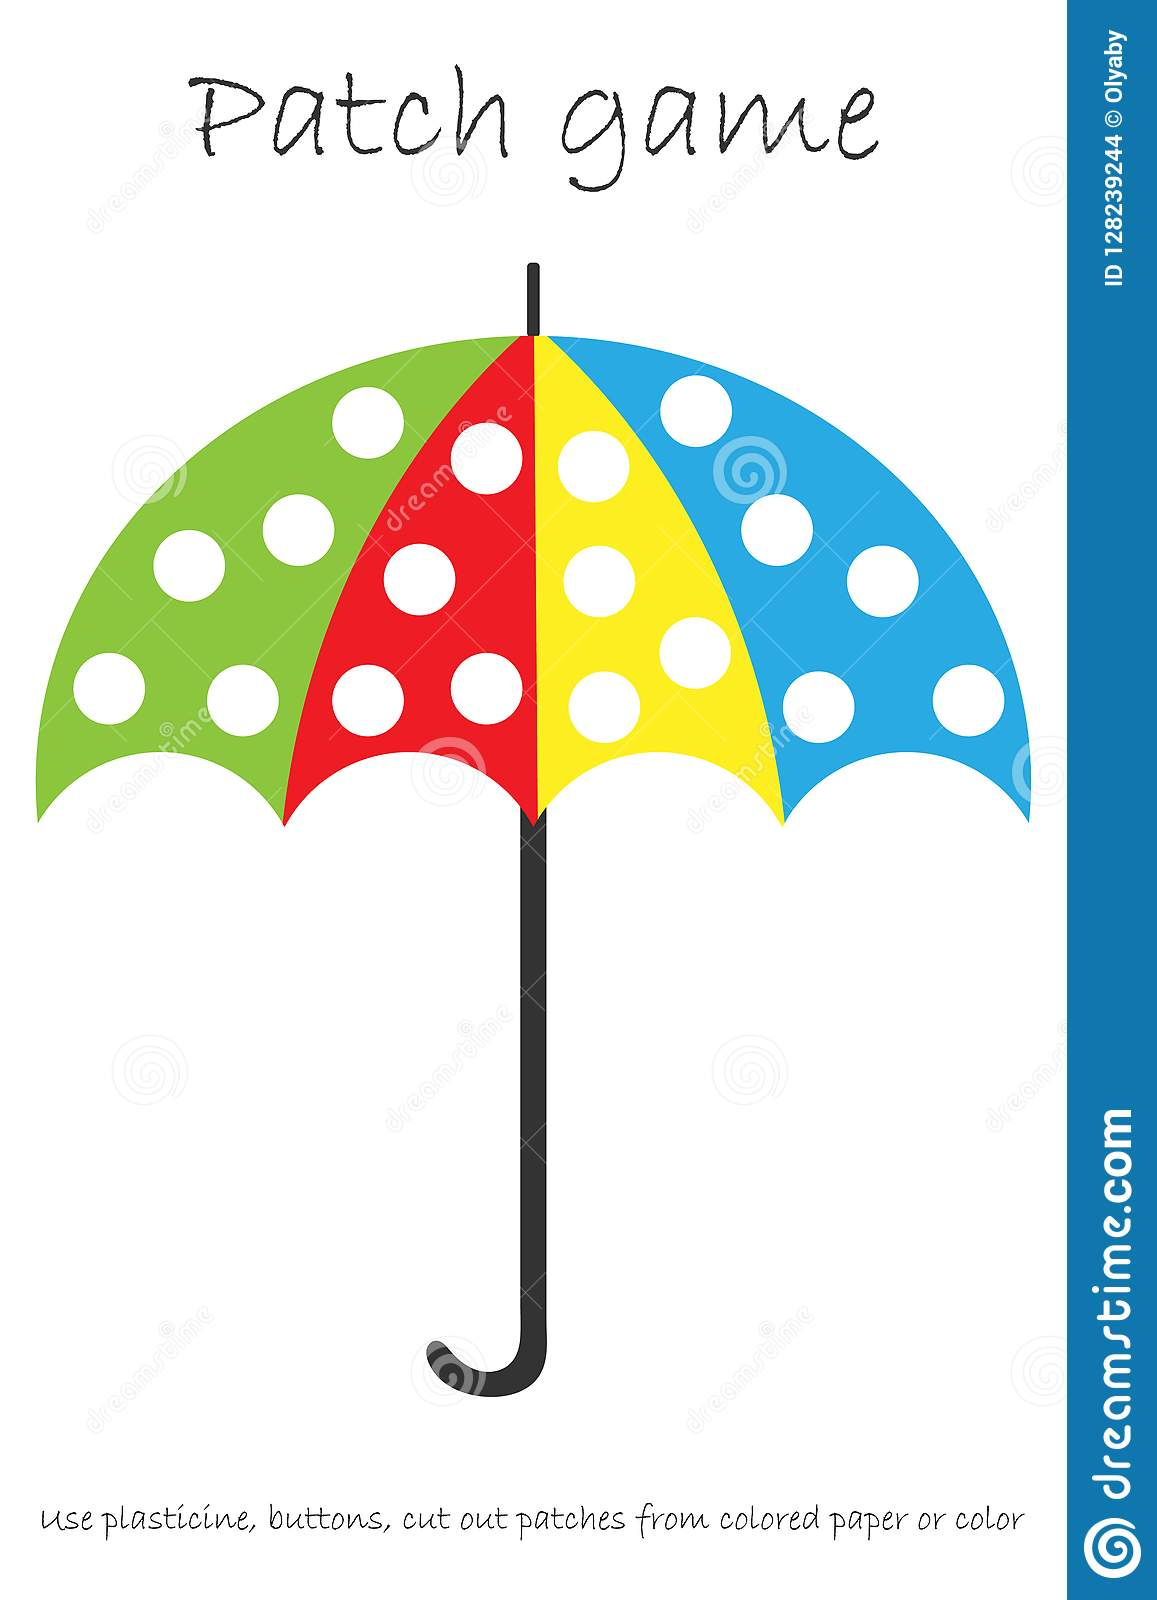 Education Patch Game Umbrella For Children To Develop